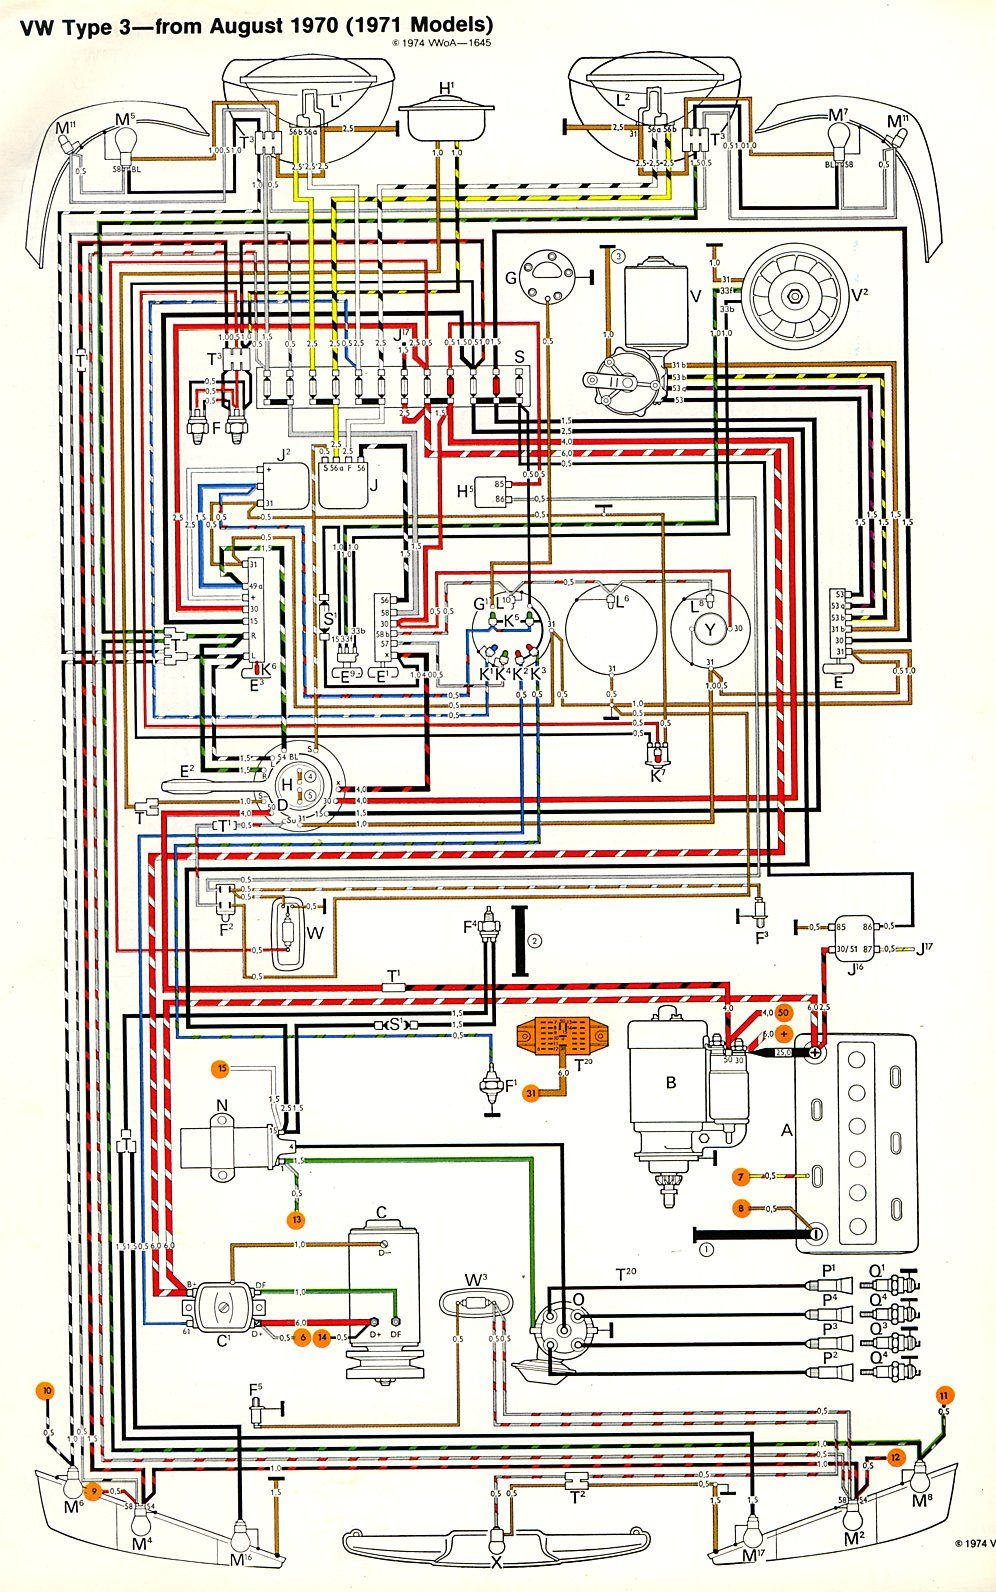 hight resolution of 1971 type iii wiring diagram volkswagens electrical diagram vw